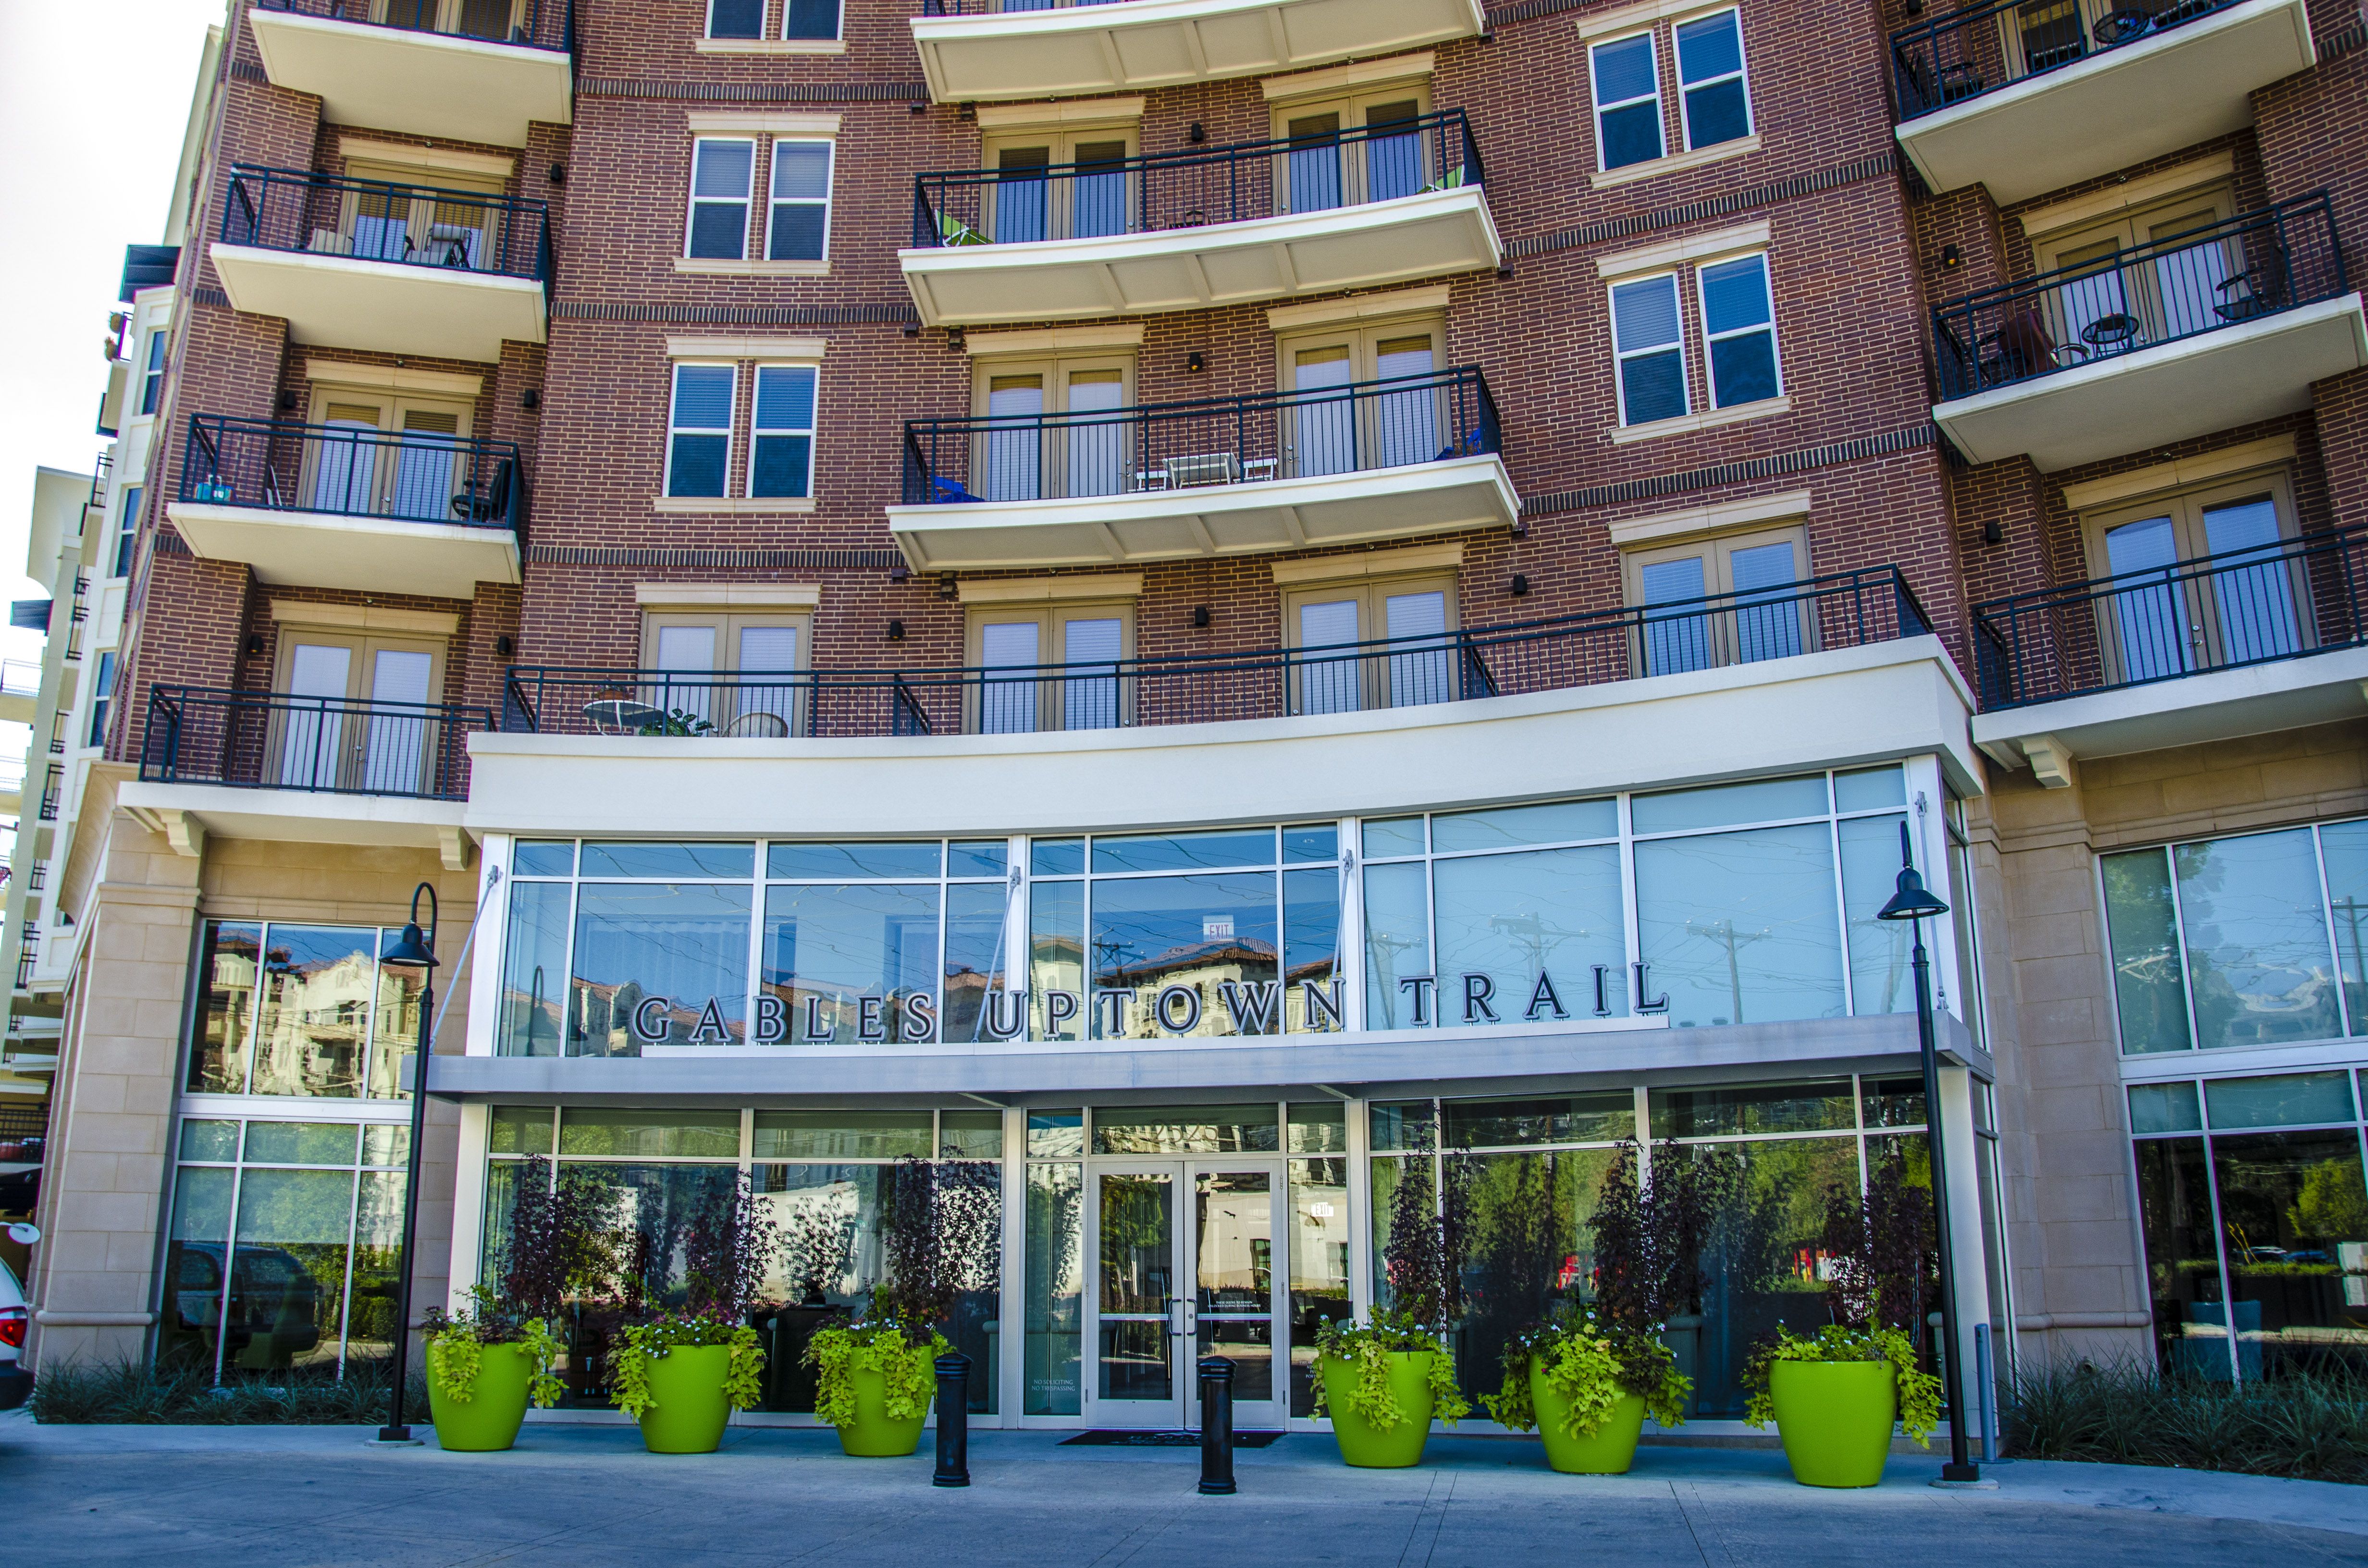 Gables Uptown Trail - Uptown Dallas Apartments